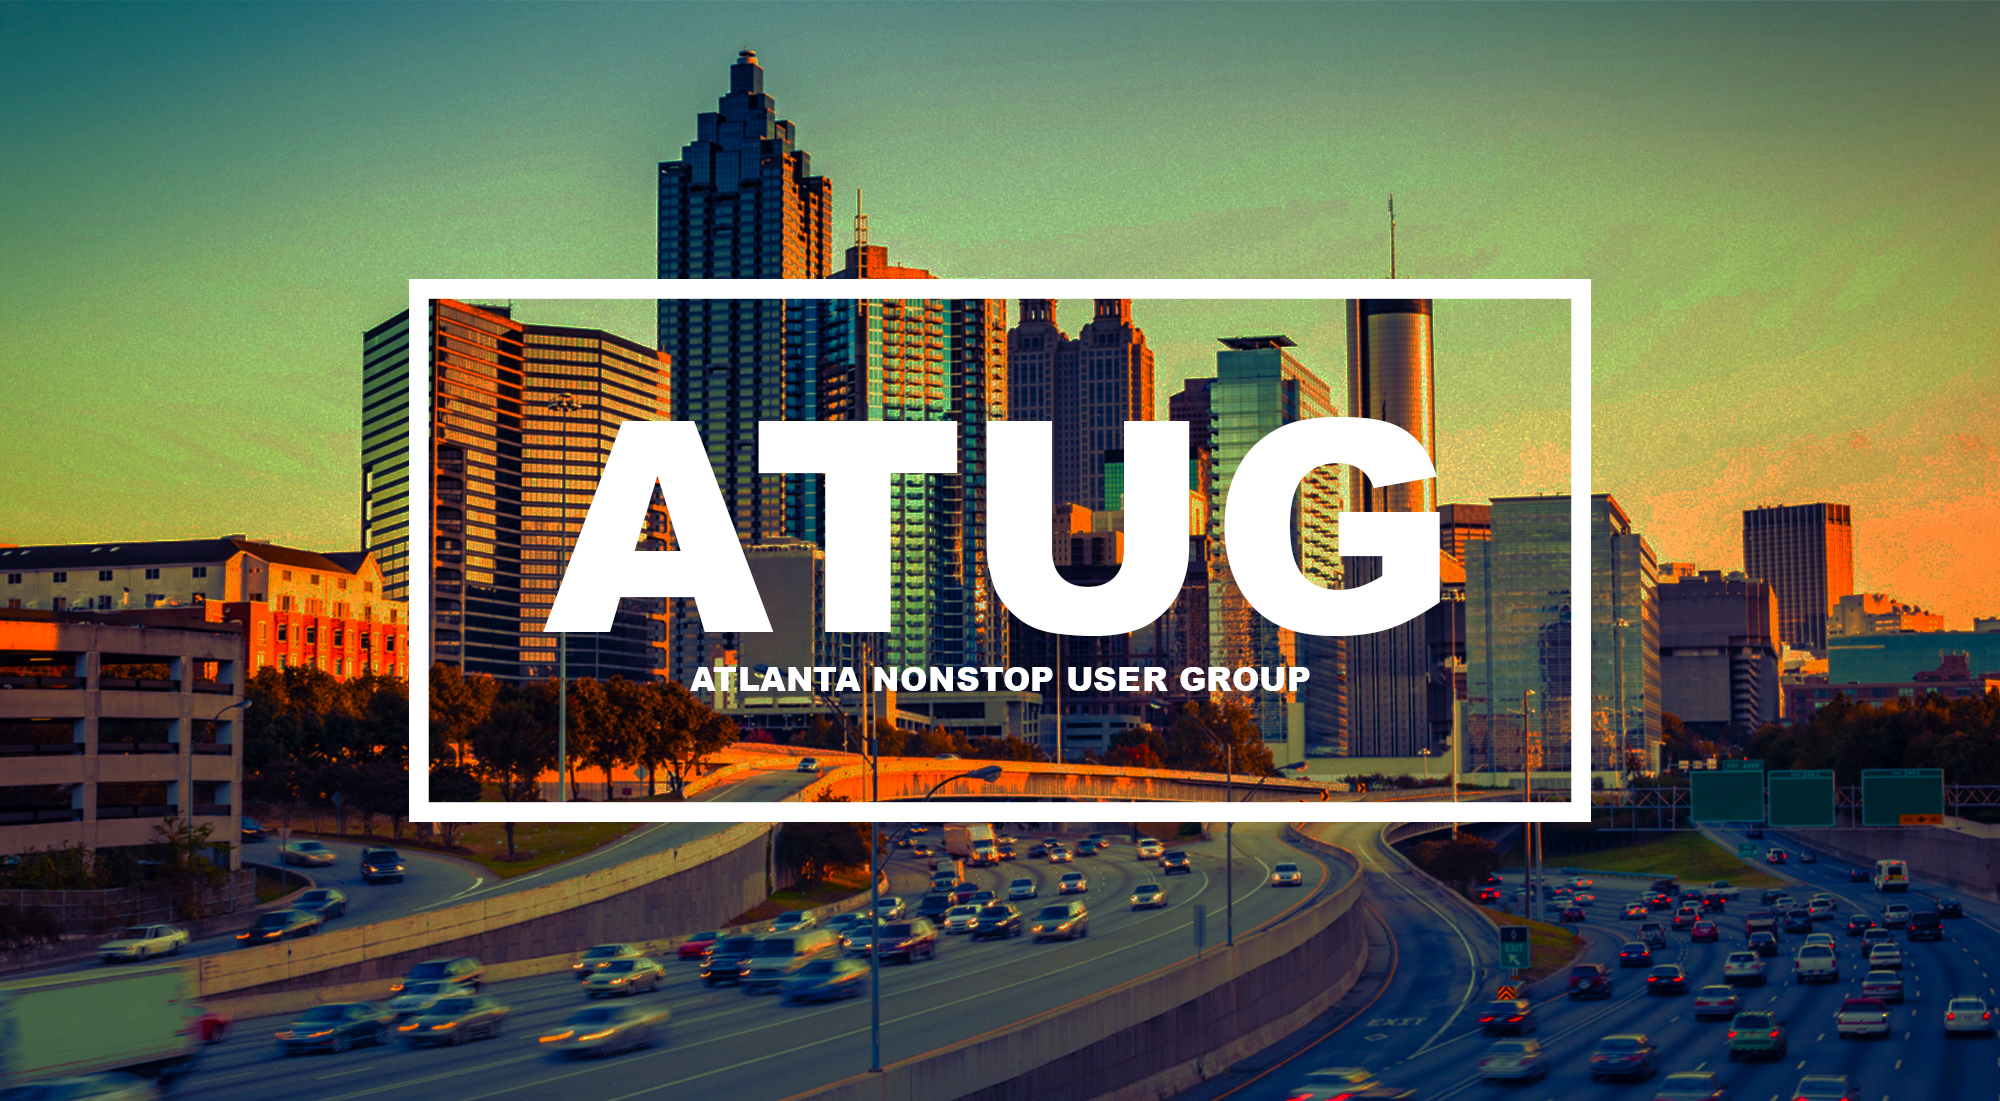 ATUG (Atlanta Tandem User Group) was originally established in the 80's and is now reformed with new purpose. We are located in Atlanta, GA and have the support of the local HPE team and strong Partners. ATUG is comprised of members from HPE, Partners, Users and Vendors from around the world. We formed to meet others, exchange ideas, and learn from others experiences and together. These are exciting times and we have a well-rounded group of attendees. ATUG meeting attendees are considered HPE NonStop Users and anyone with interest in the NonStop platform.